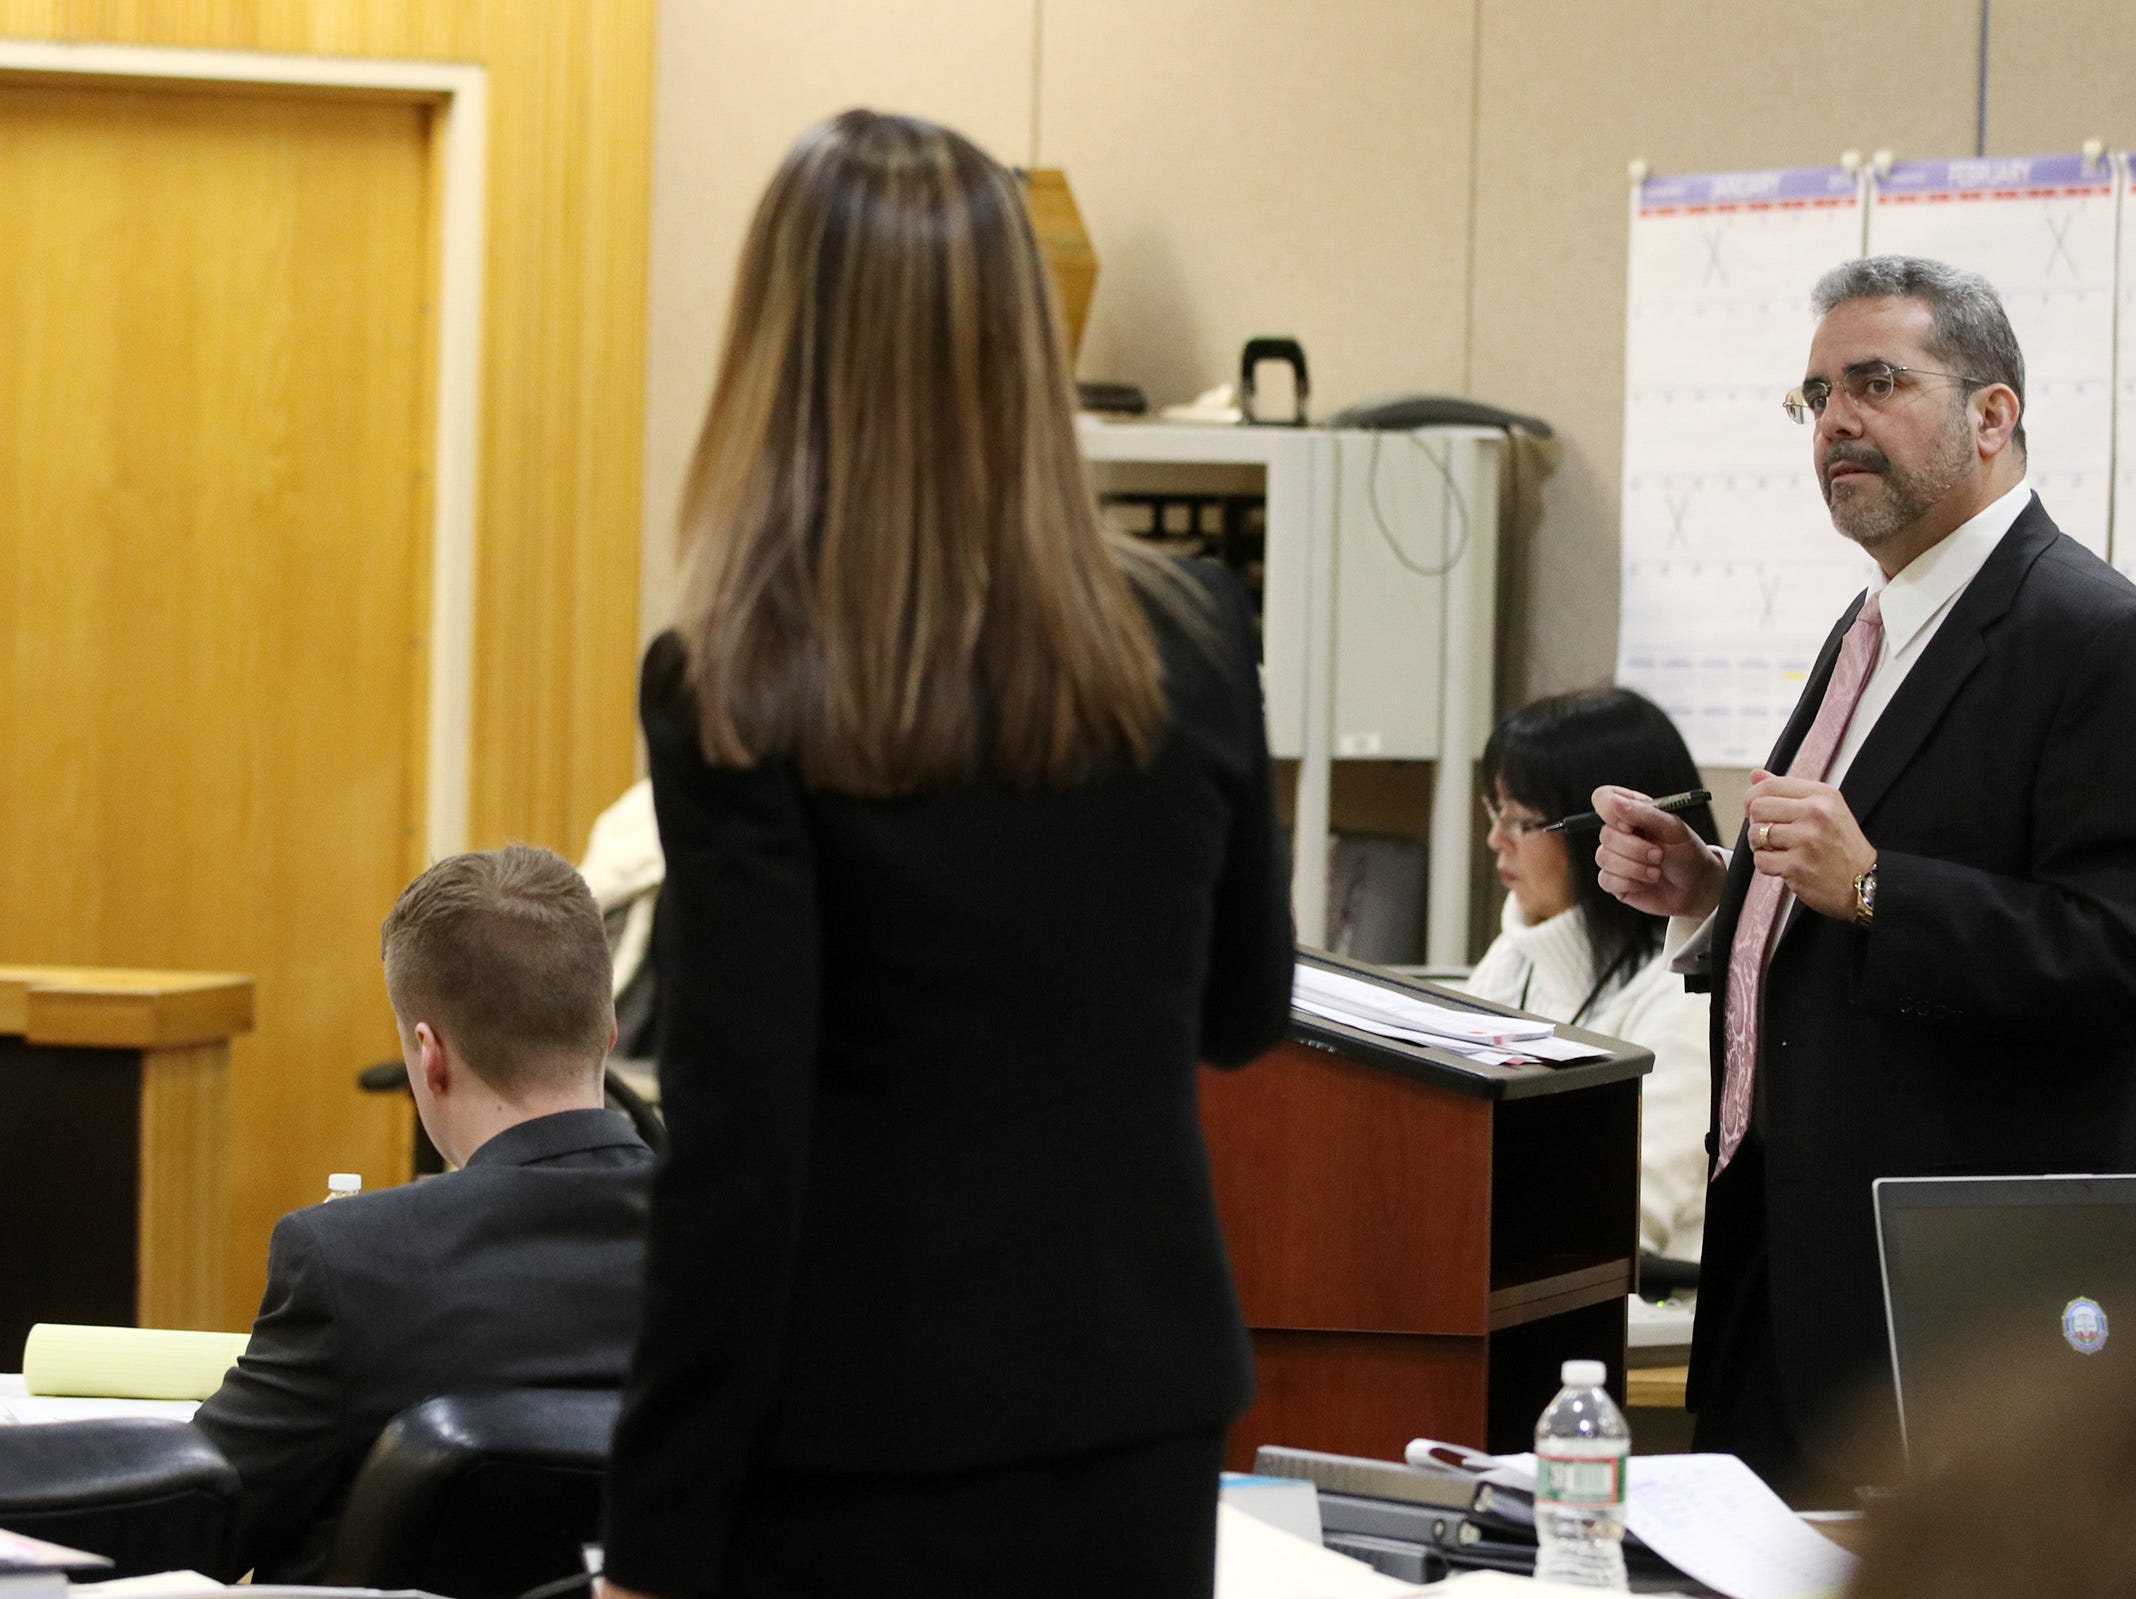 Defense attorney Carlos Diaz-Cobo questions a witness as Meghan Doyle, assistant Monmouth County prosecutor, objects to a question during the trial of Liam McAtasney, who is charged with the murder of former high school classmate, Sarah Stern, before Superior Court Judge Richard W. English at the Monmouth County Courthouse in Freehold, NJ Wednesday January 30, 2019.